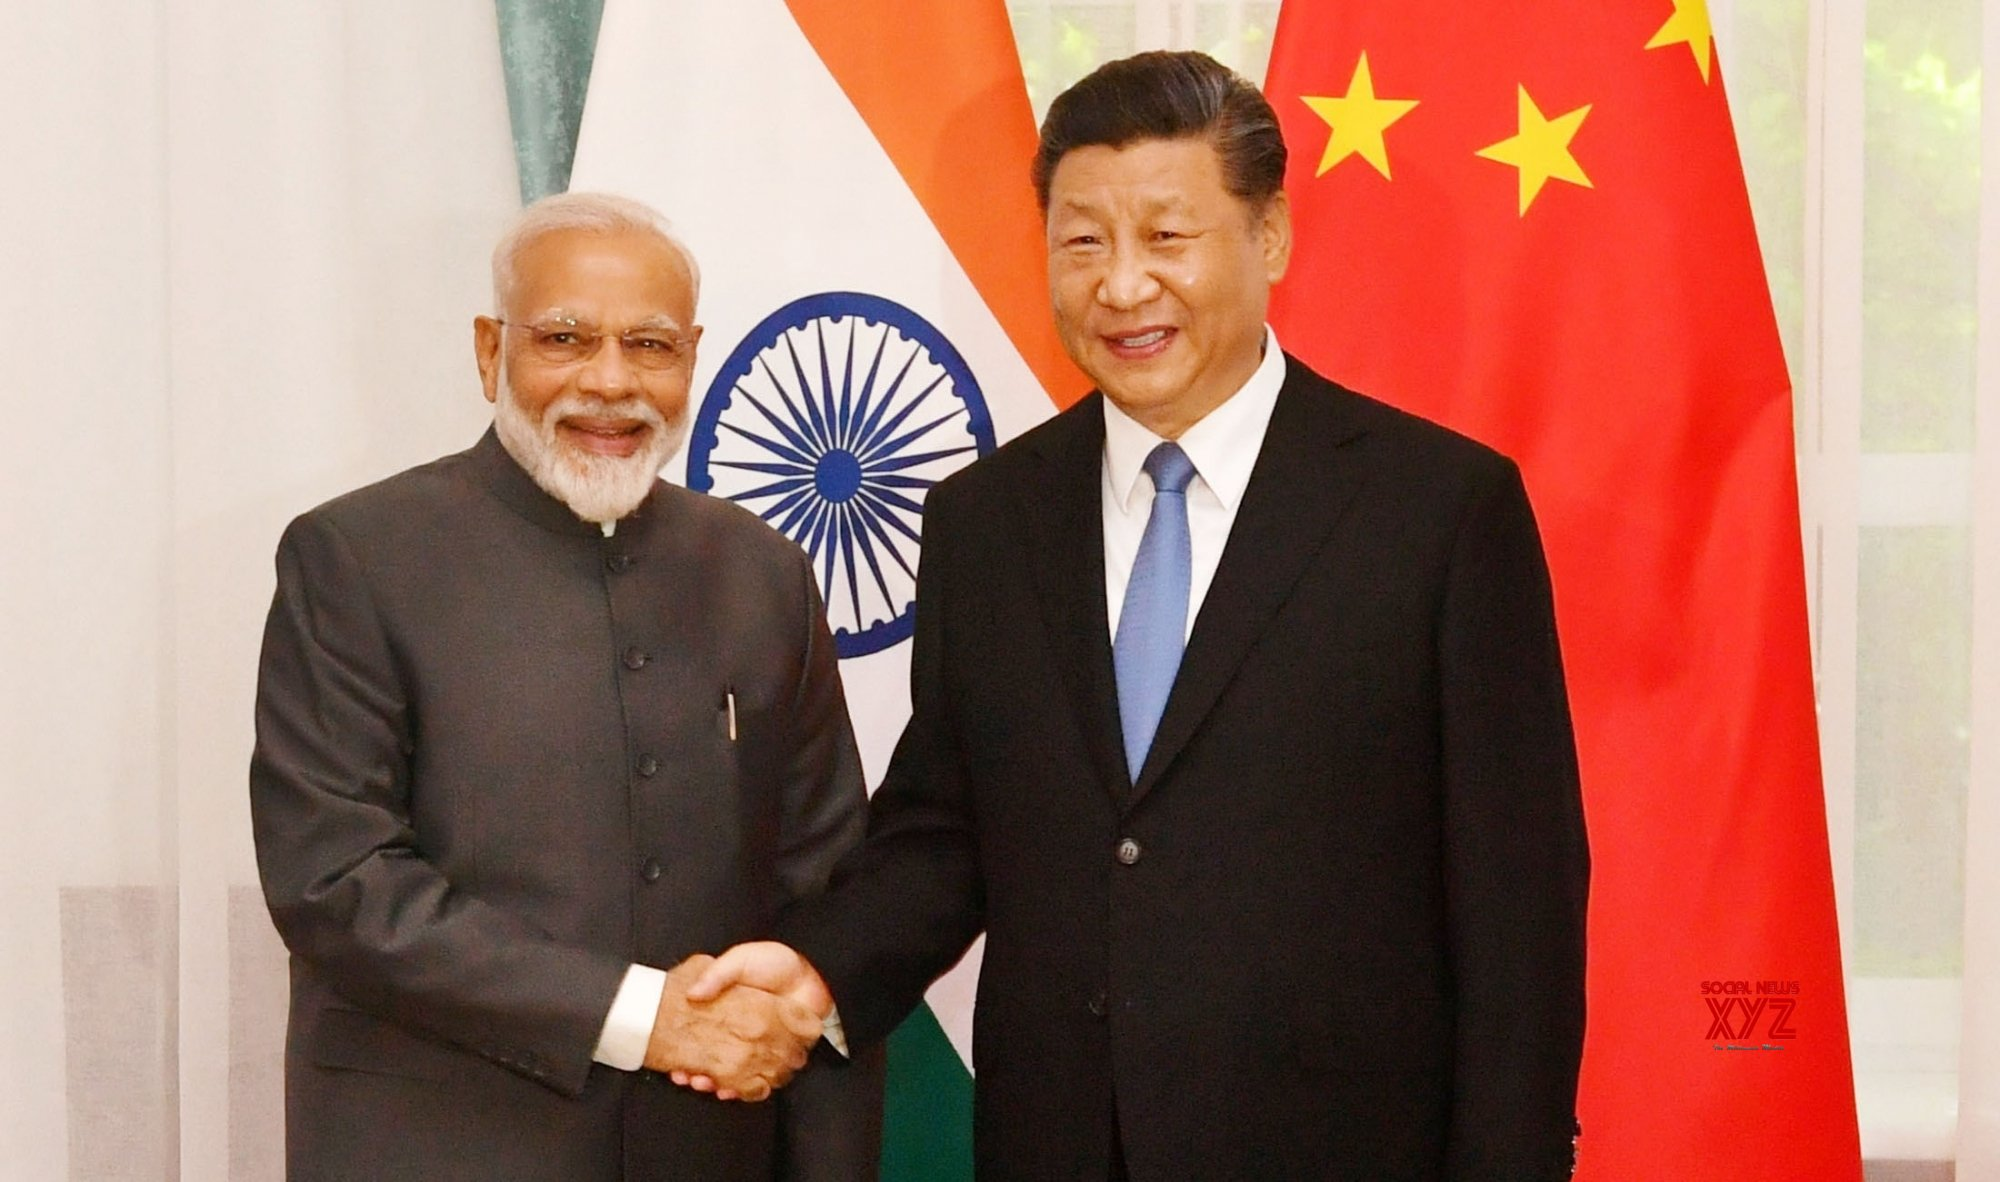 China, India should not pose threat to each other: Xi